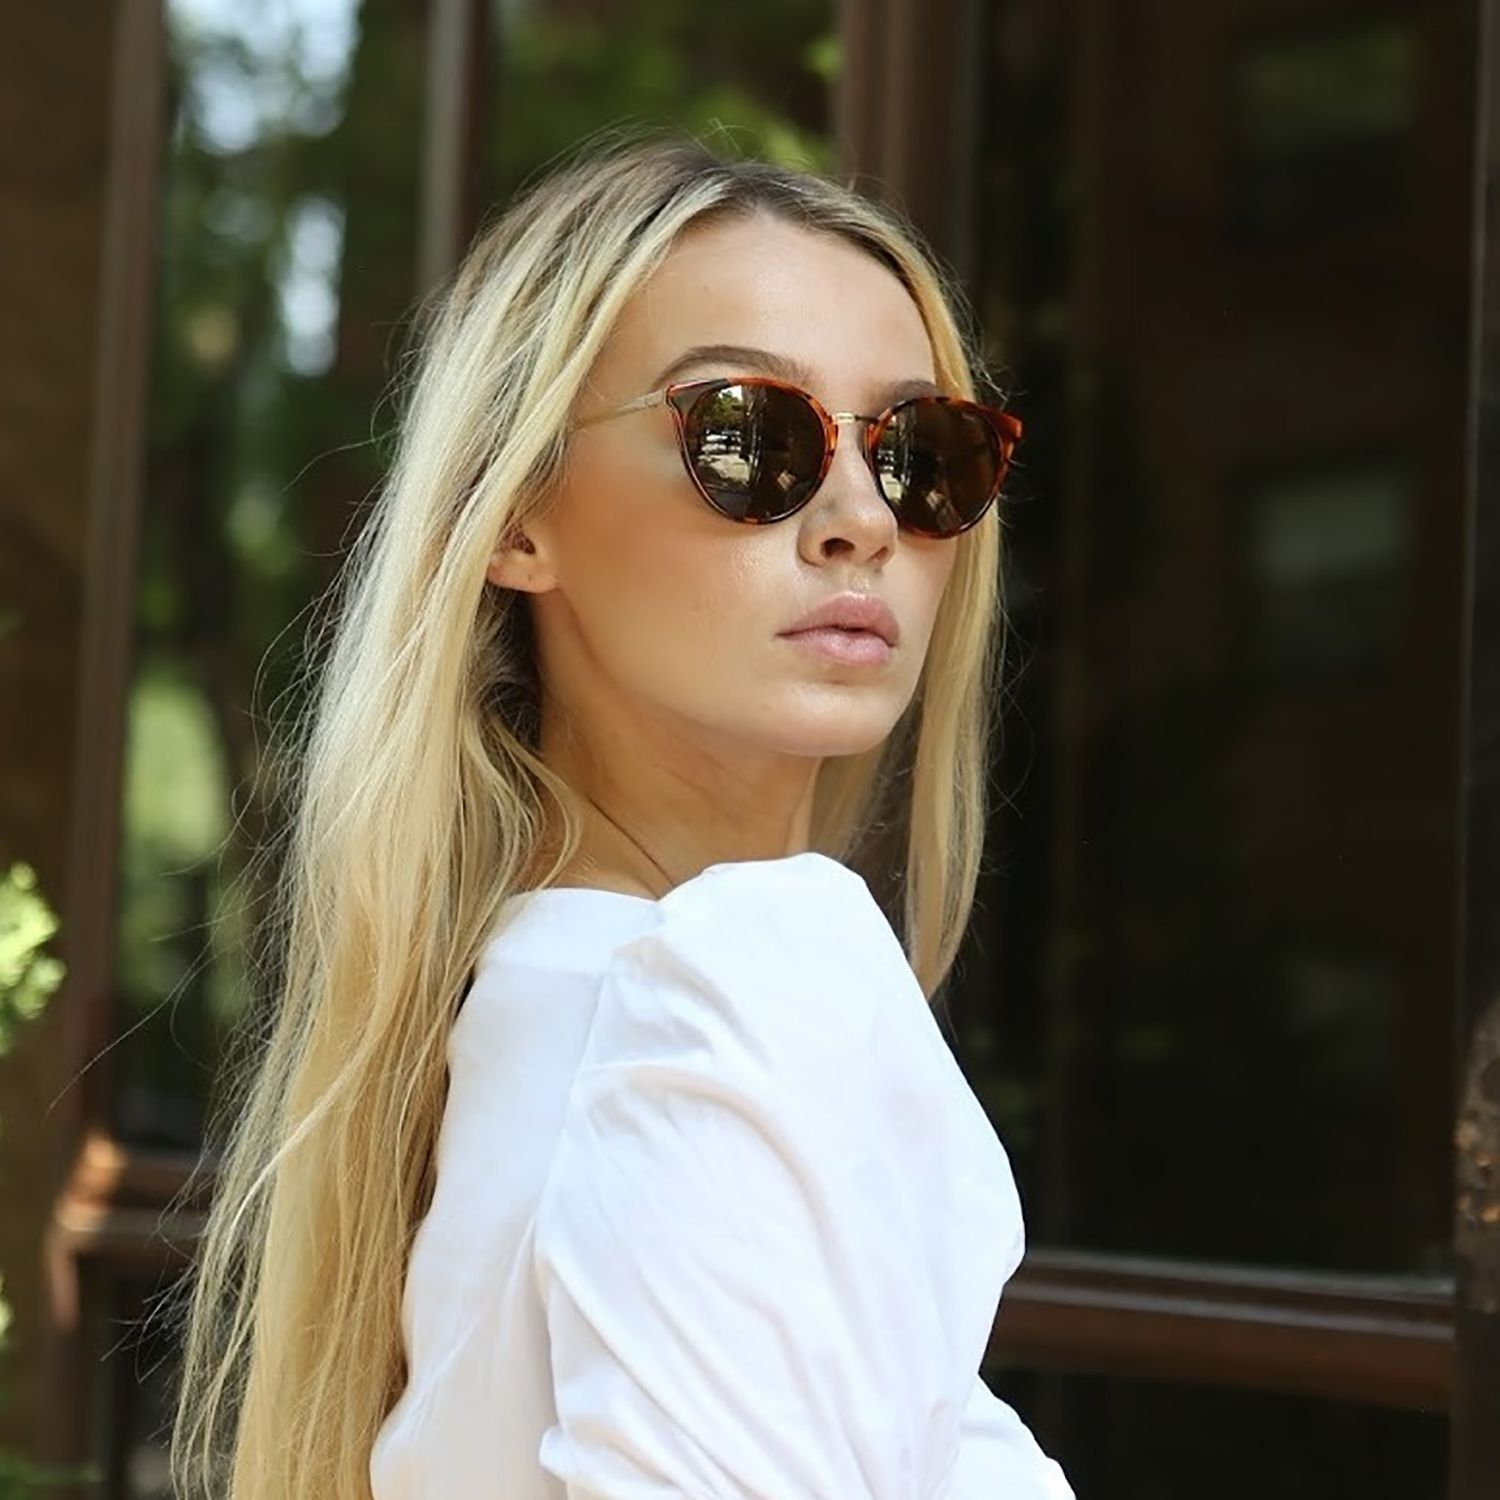 You've been framed expert reveals which eyewear best suits your face shape